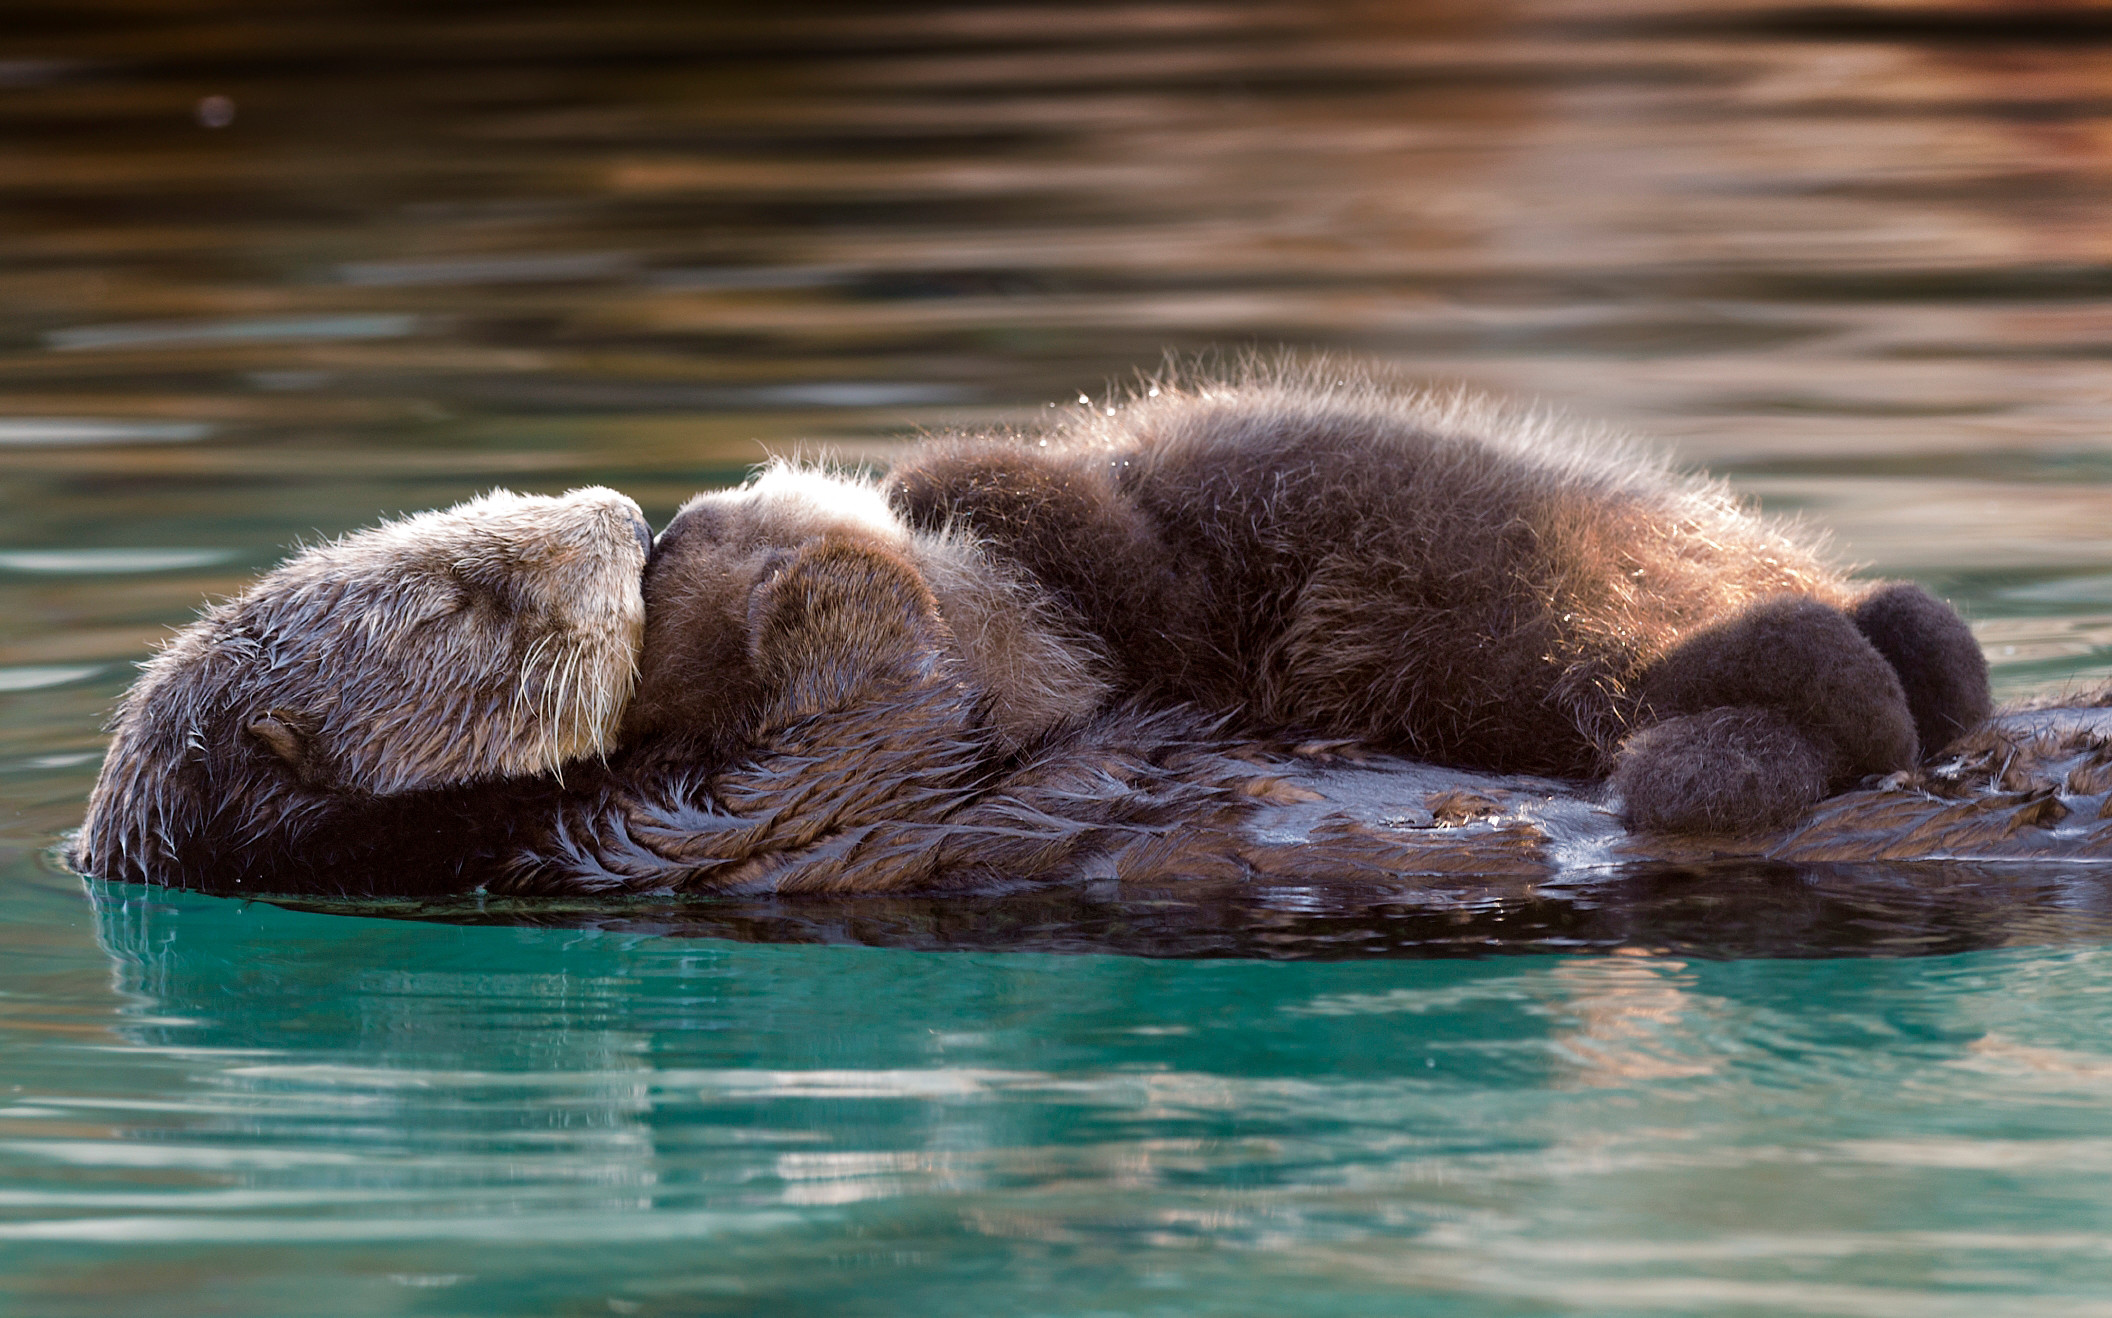 Res: 2112x1318, Southern Sea Otter Priority at the Monterey Bay Aquarium